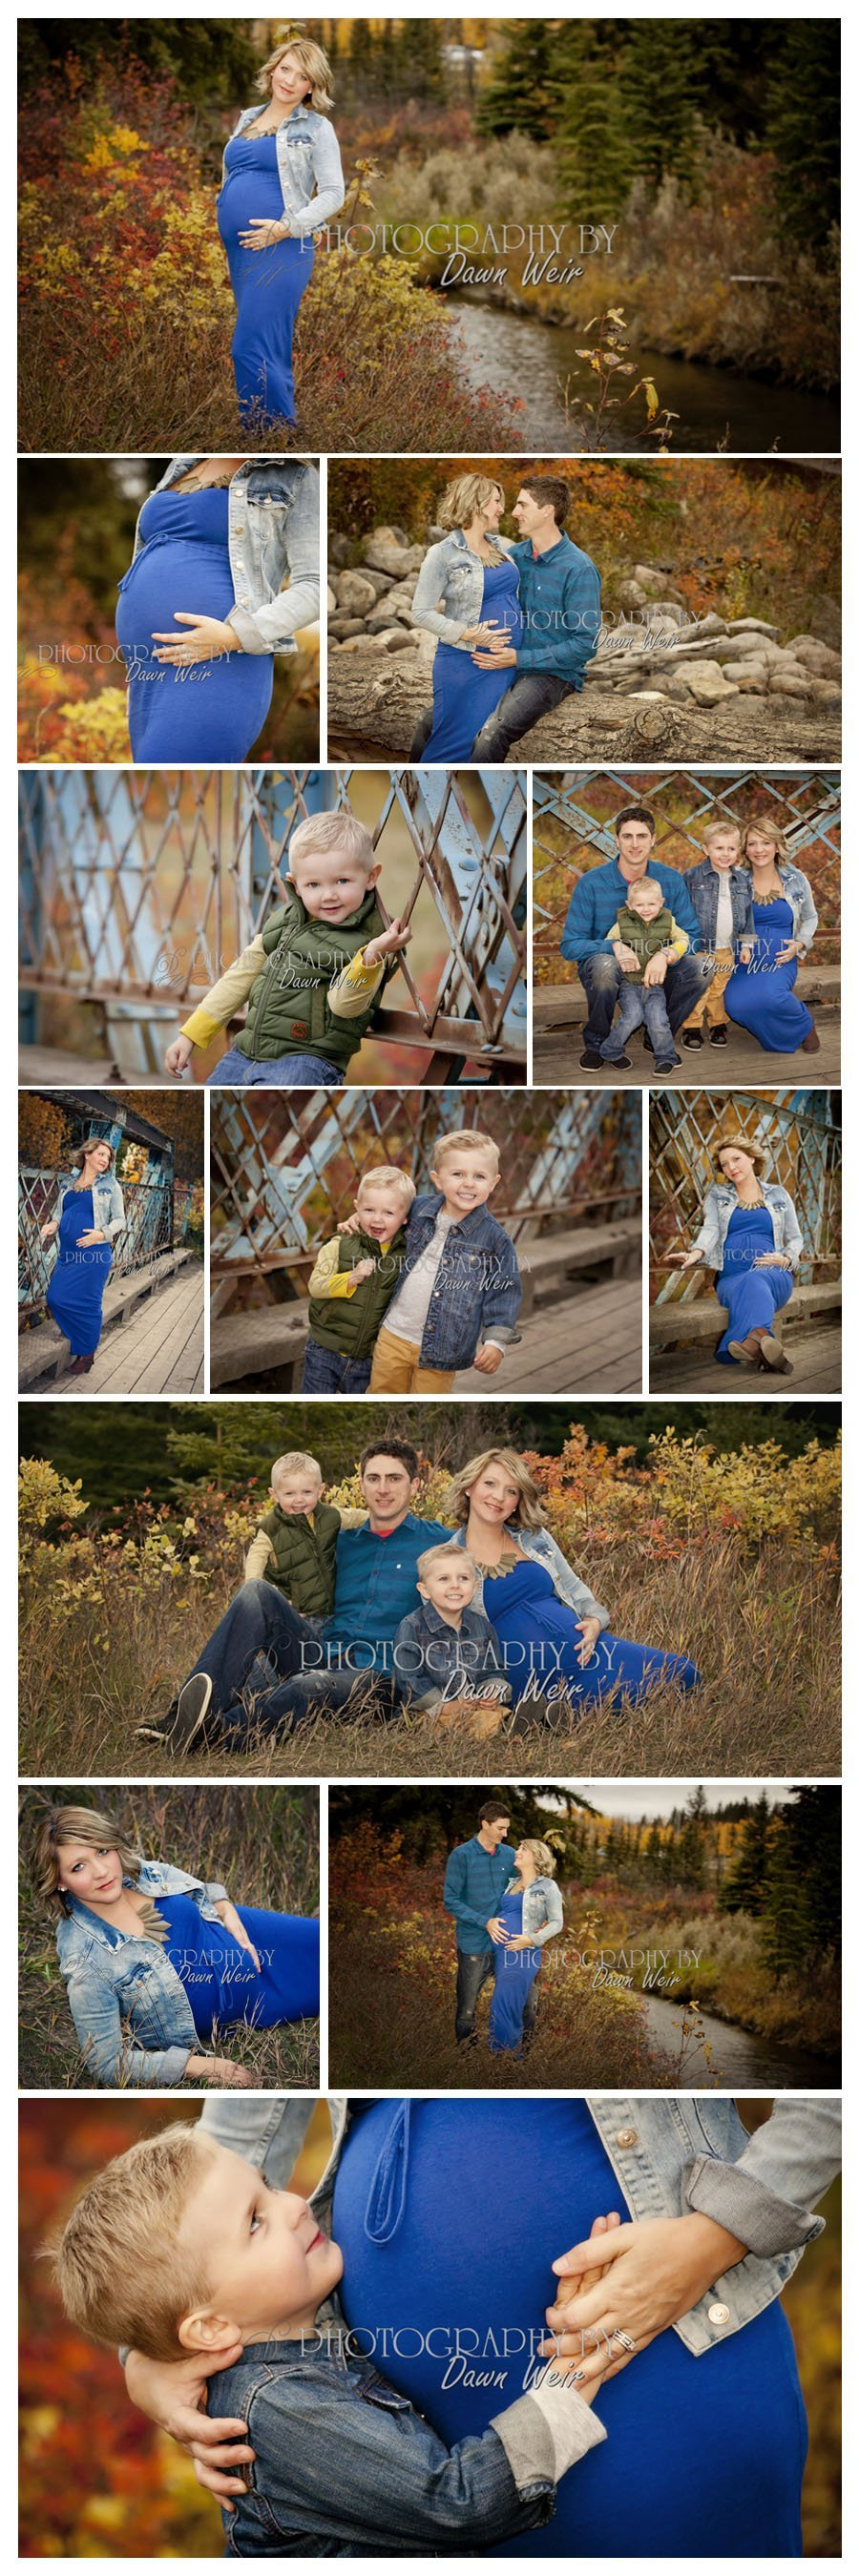 edmonton-family-photography-session